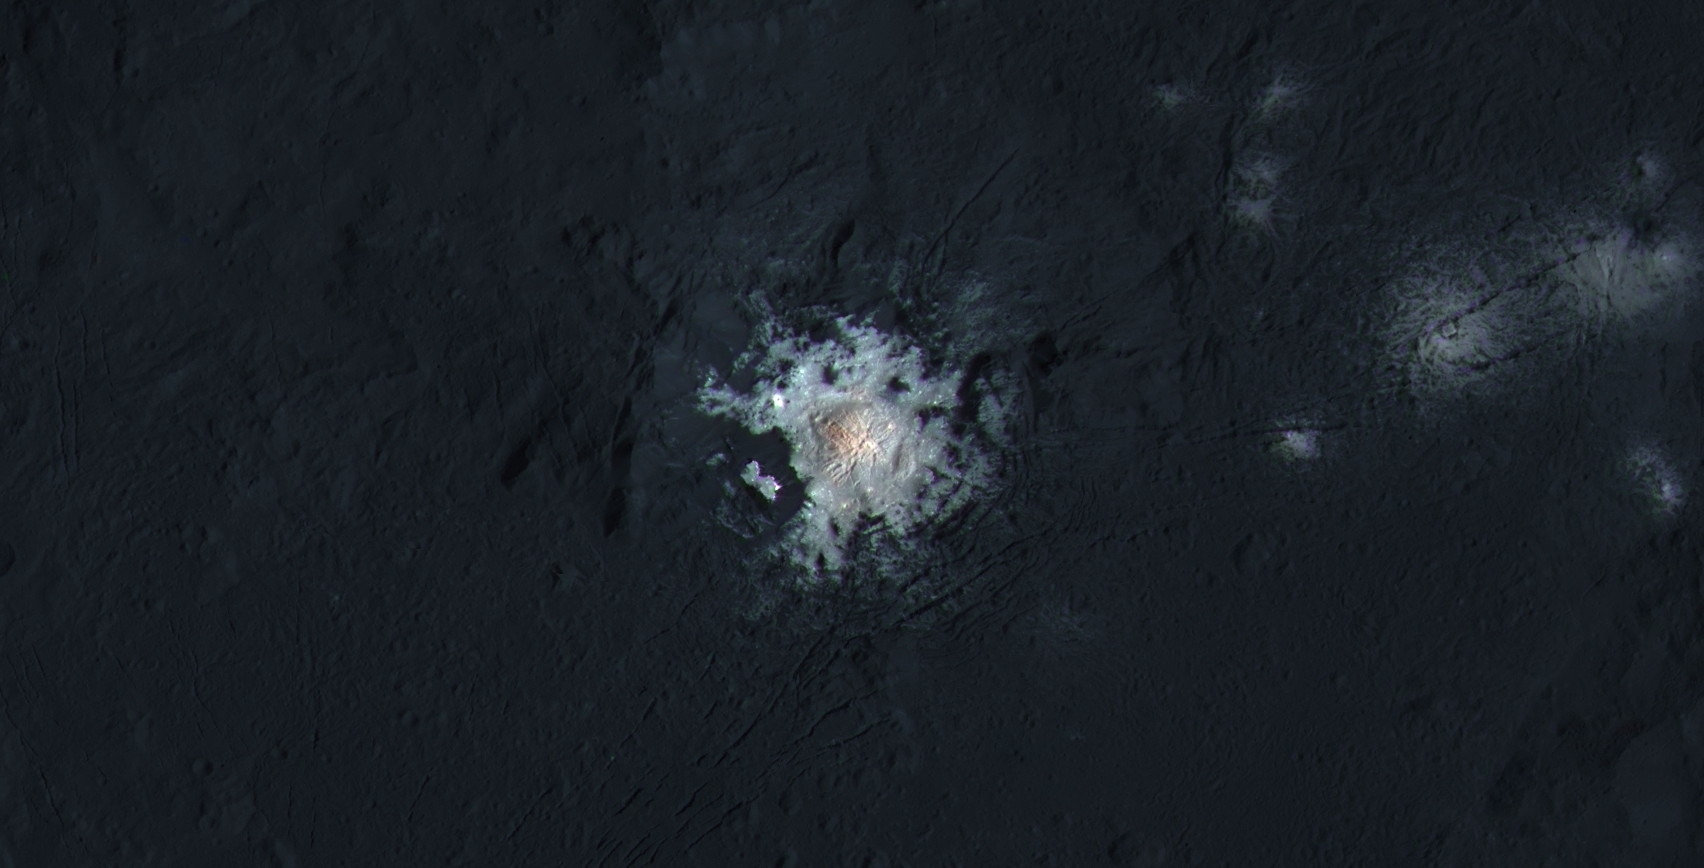 Center of Occator Crater in enhanced color! Image credit: NASA Dawn